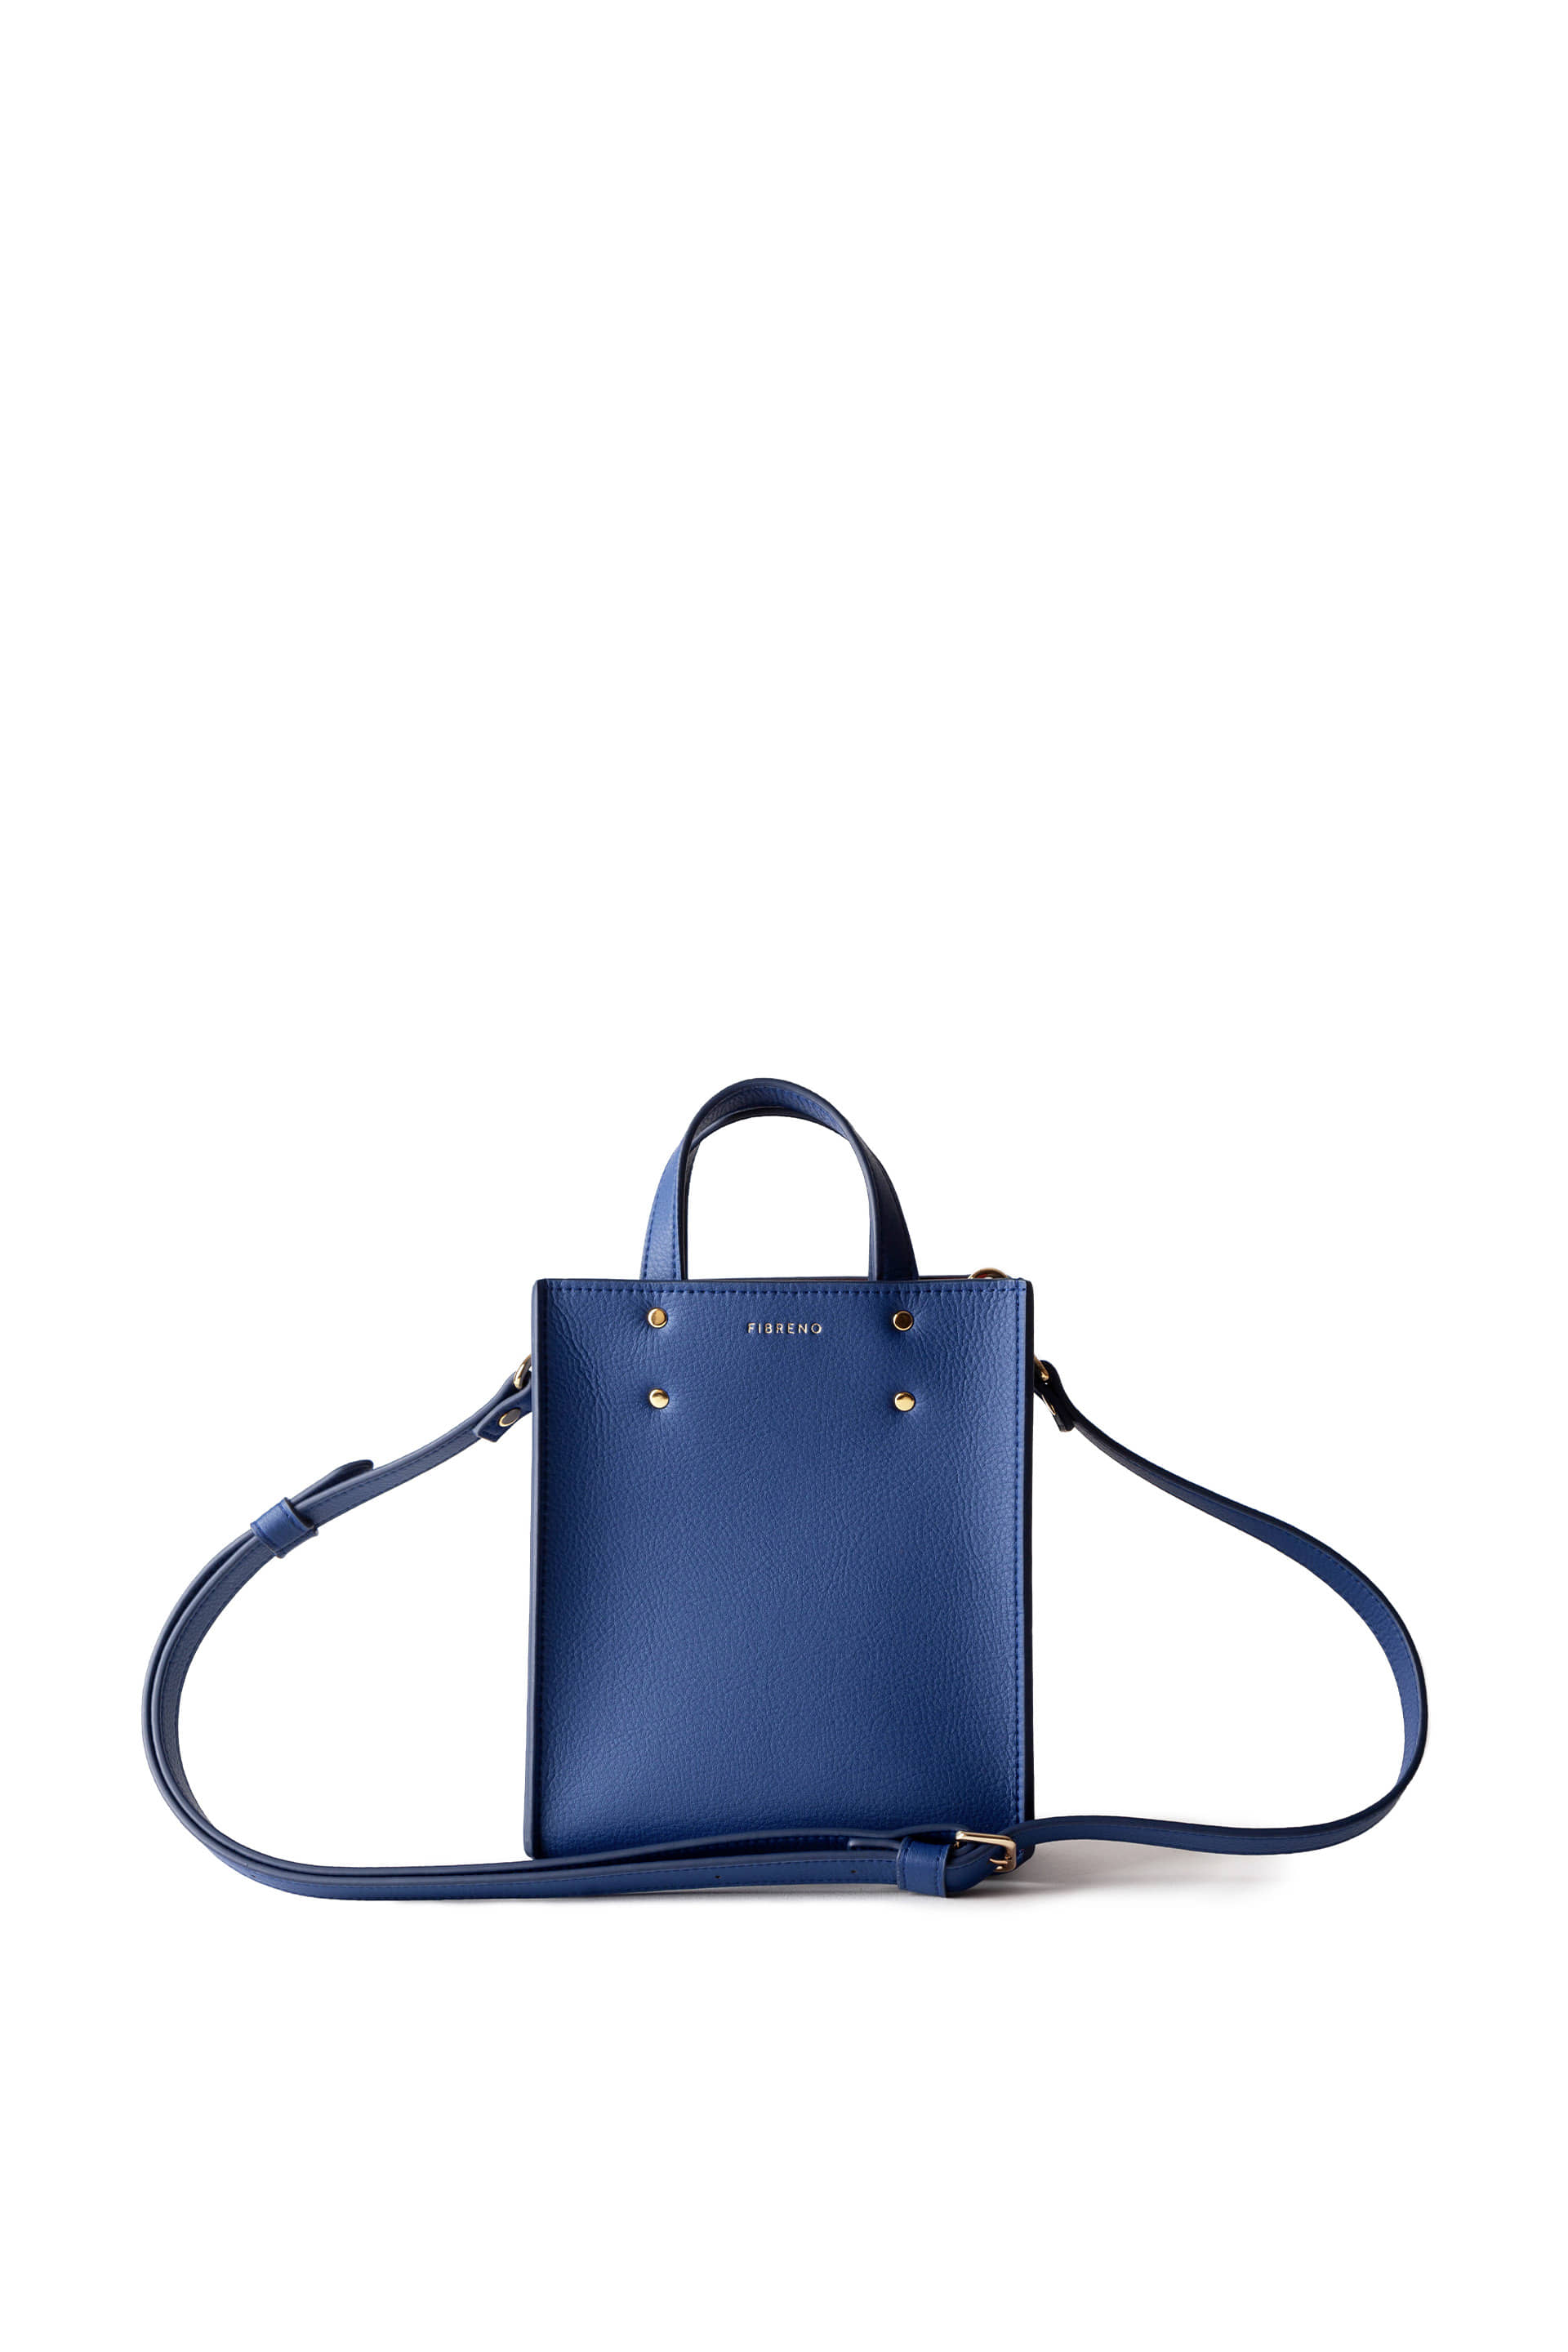 BABY MINI BAG 45 Classic Blue 149,000 > 129,000